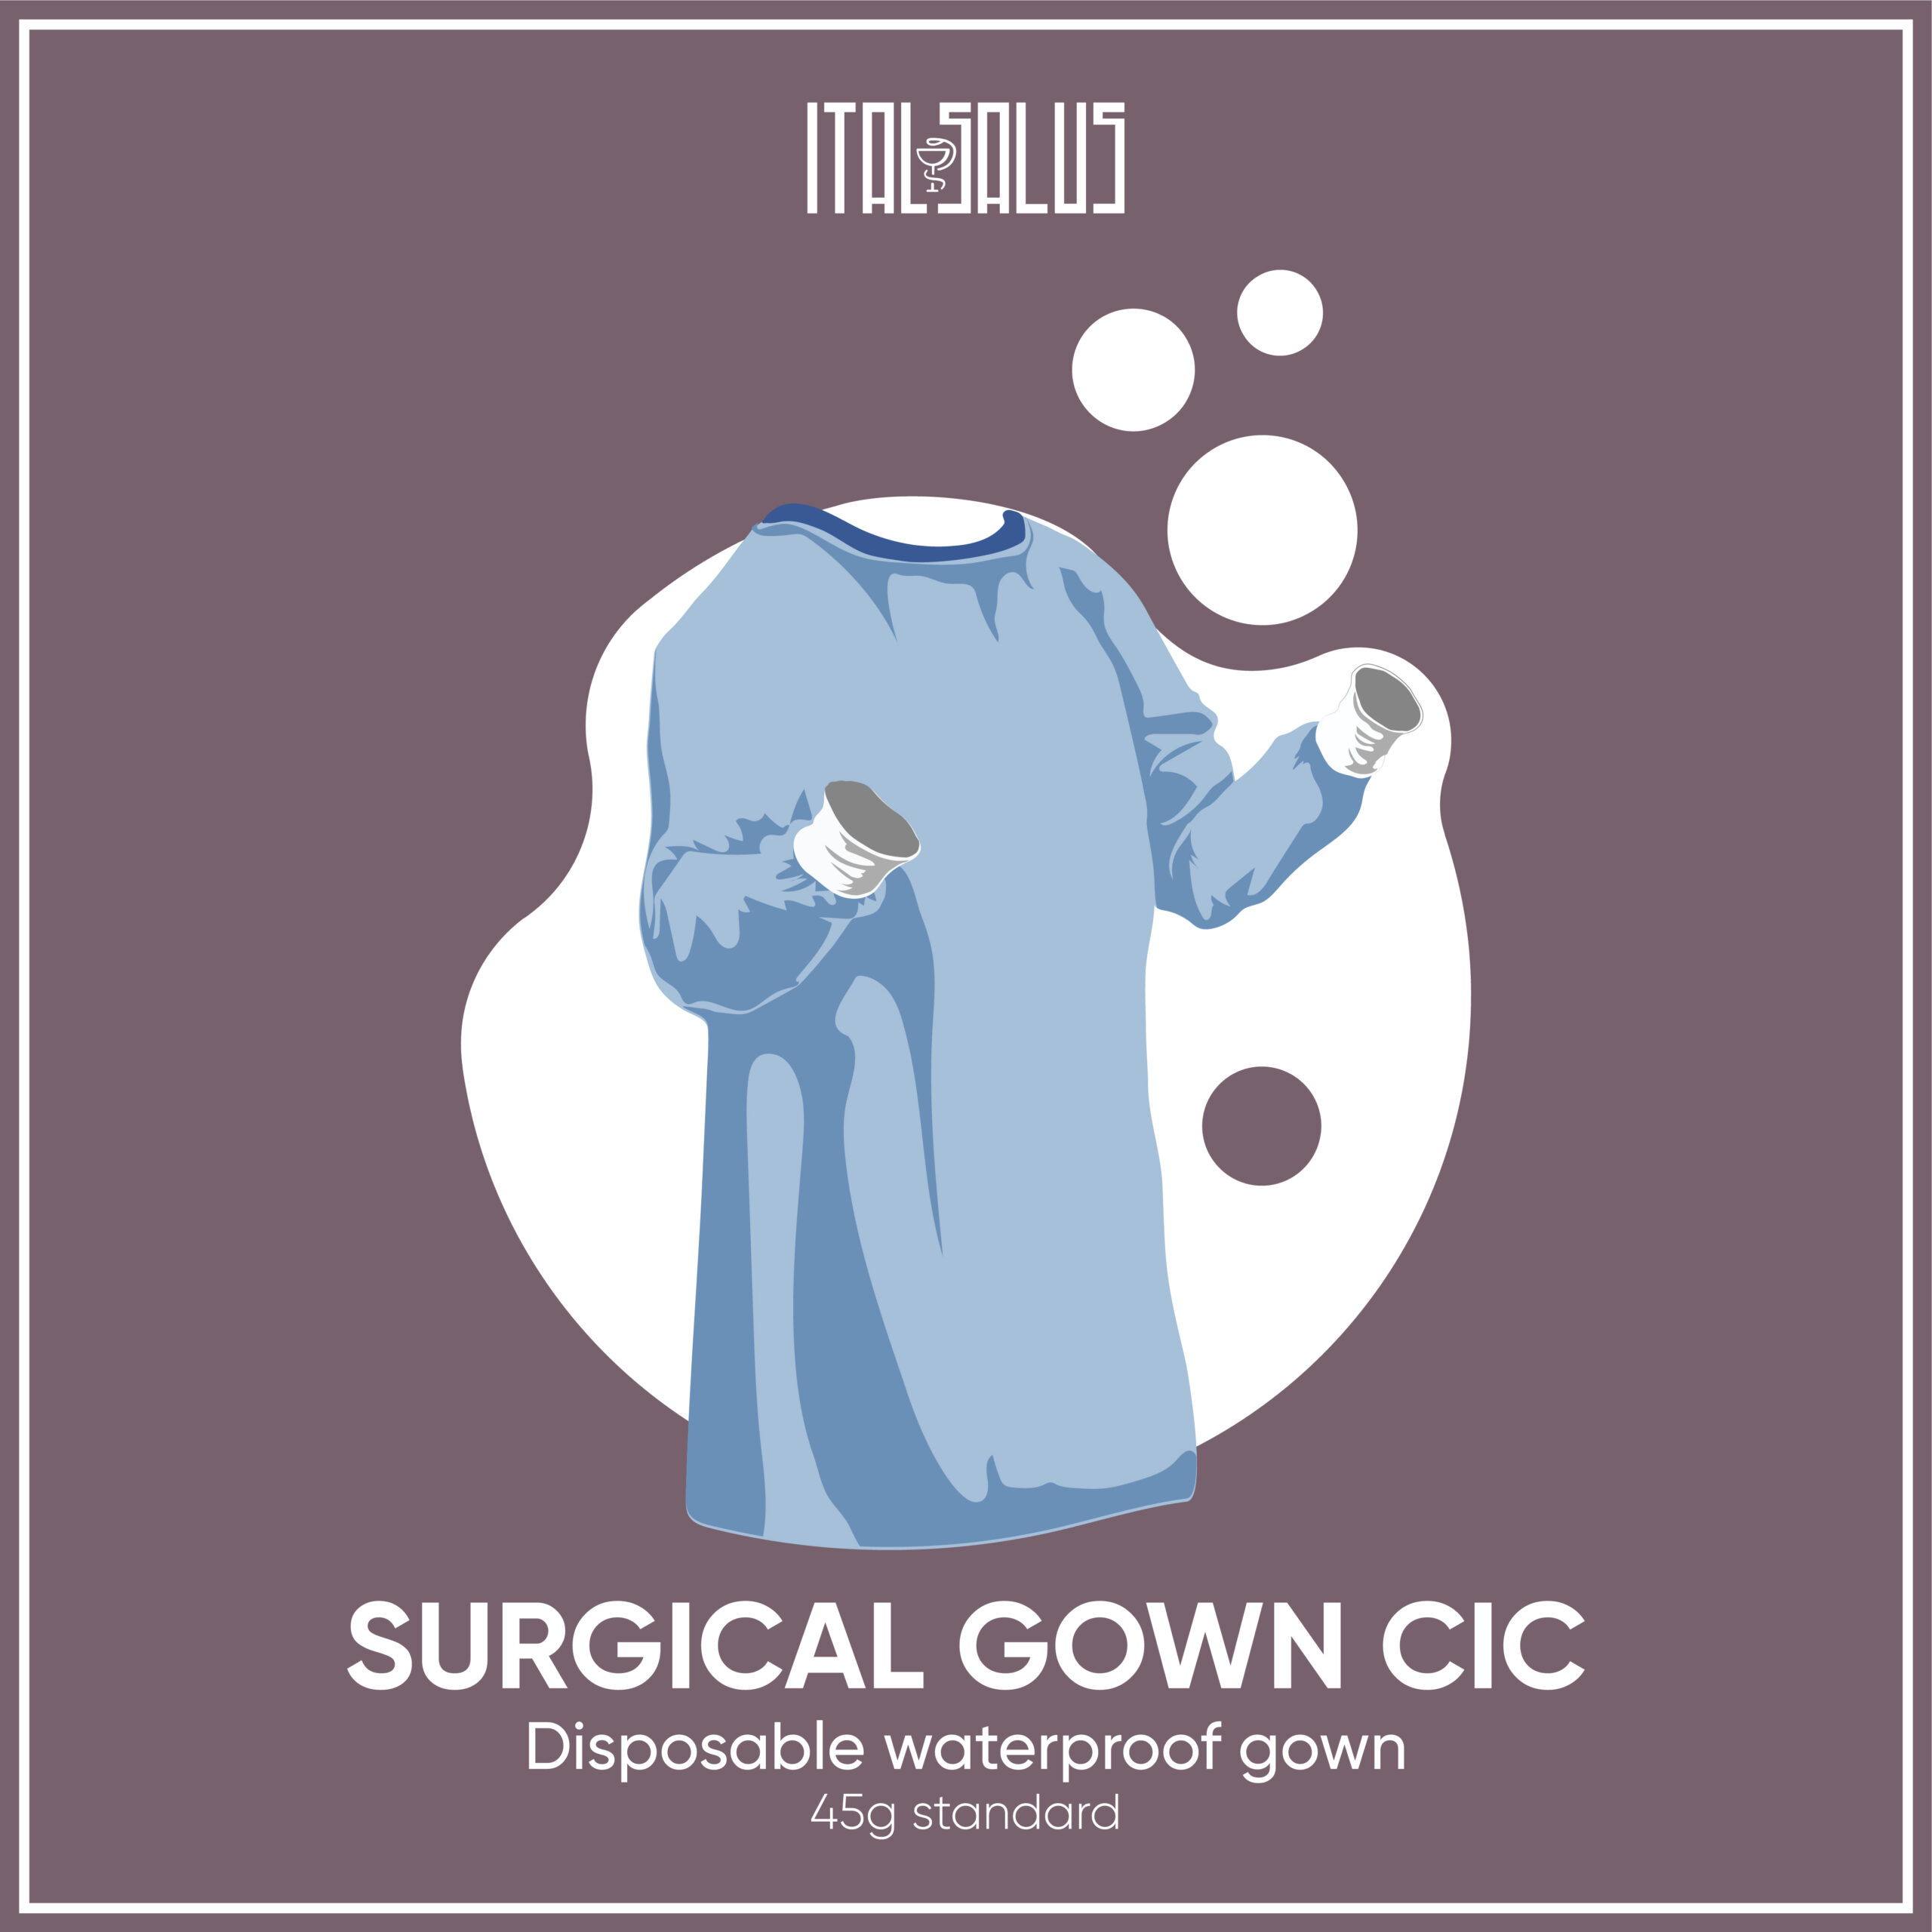 surgical gown cic draw 45g